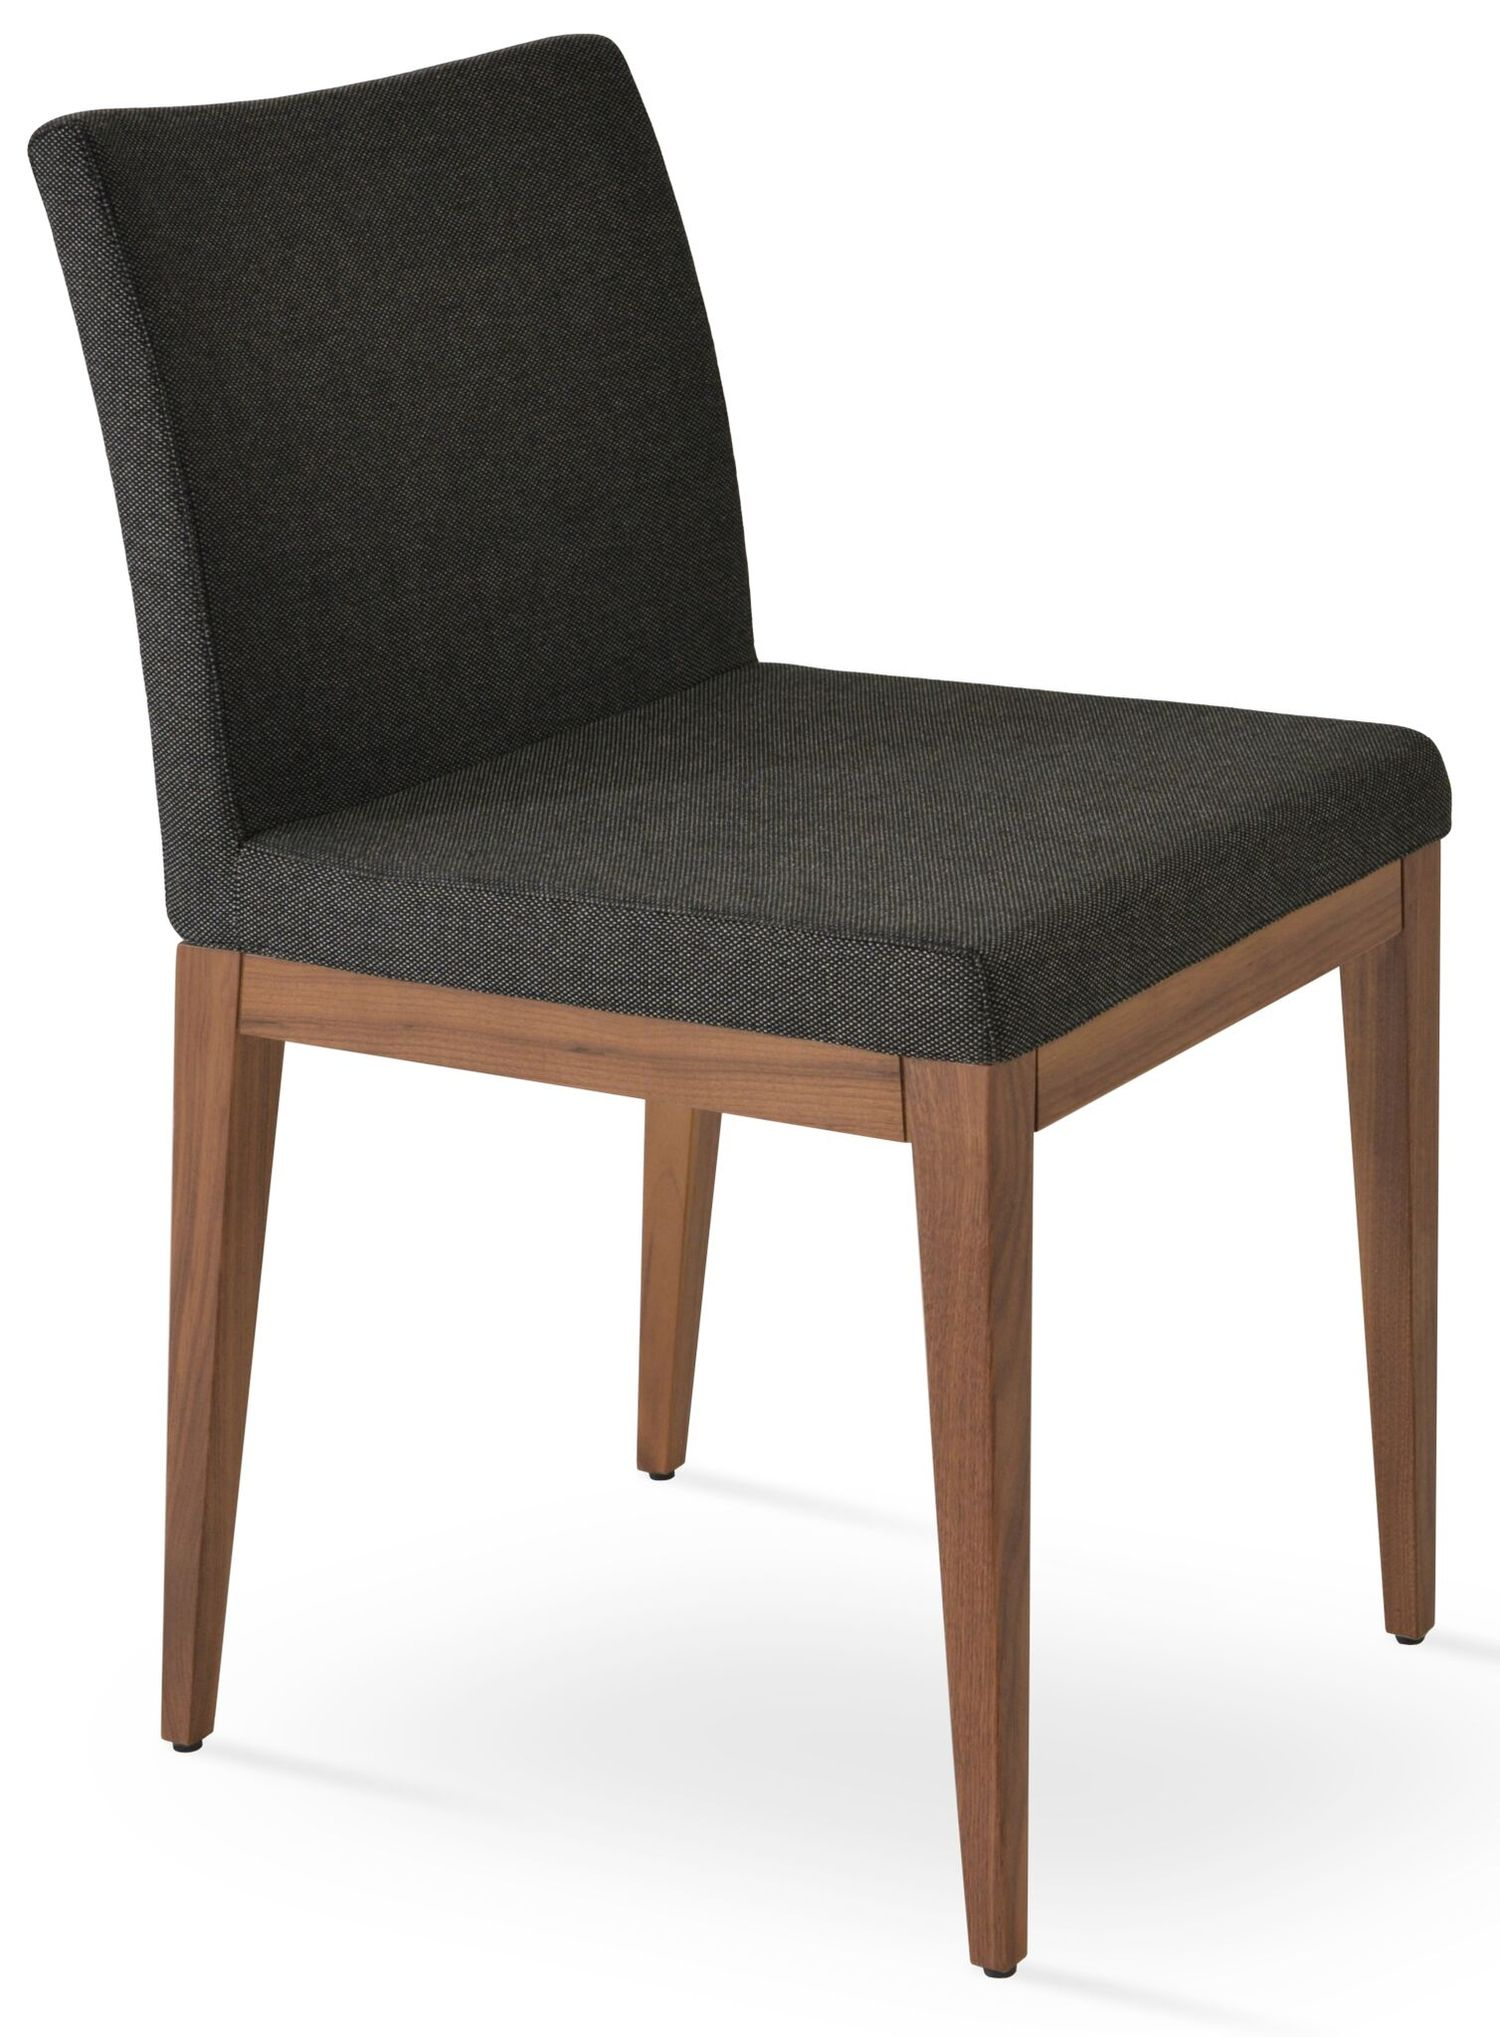 Aria Wood Dining Chair Fabric | SohoConcept